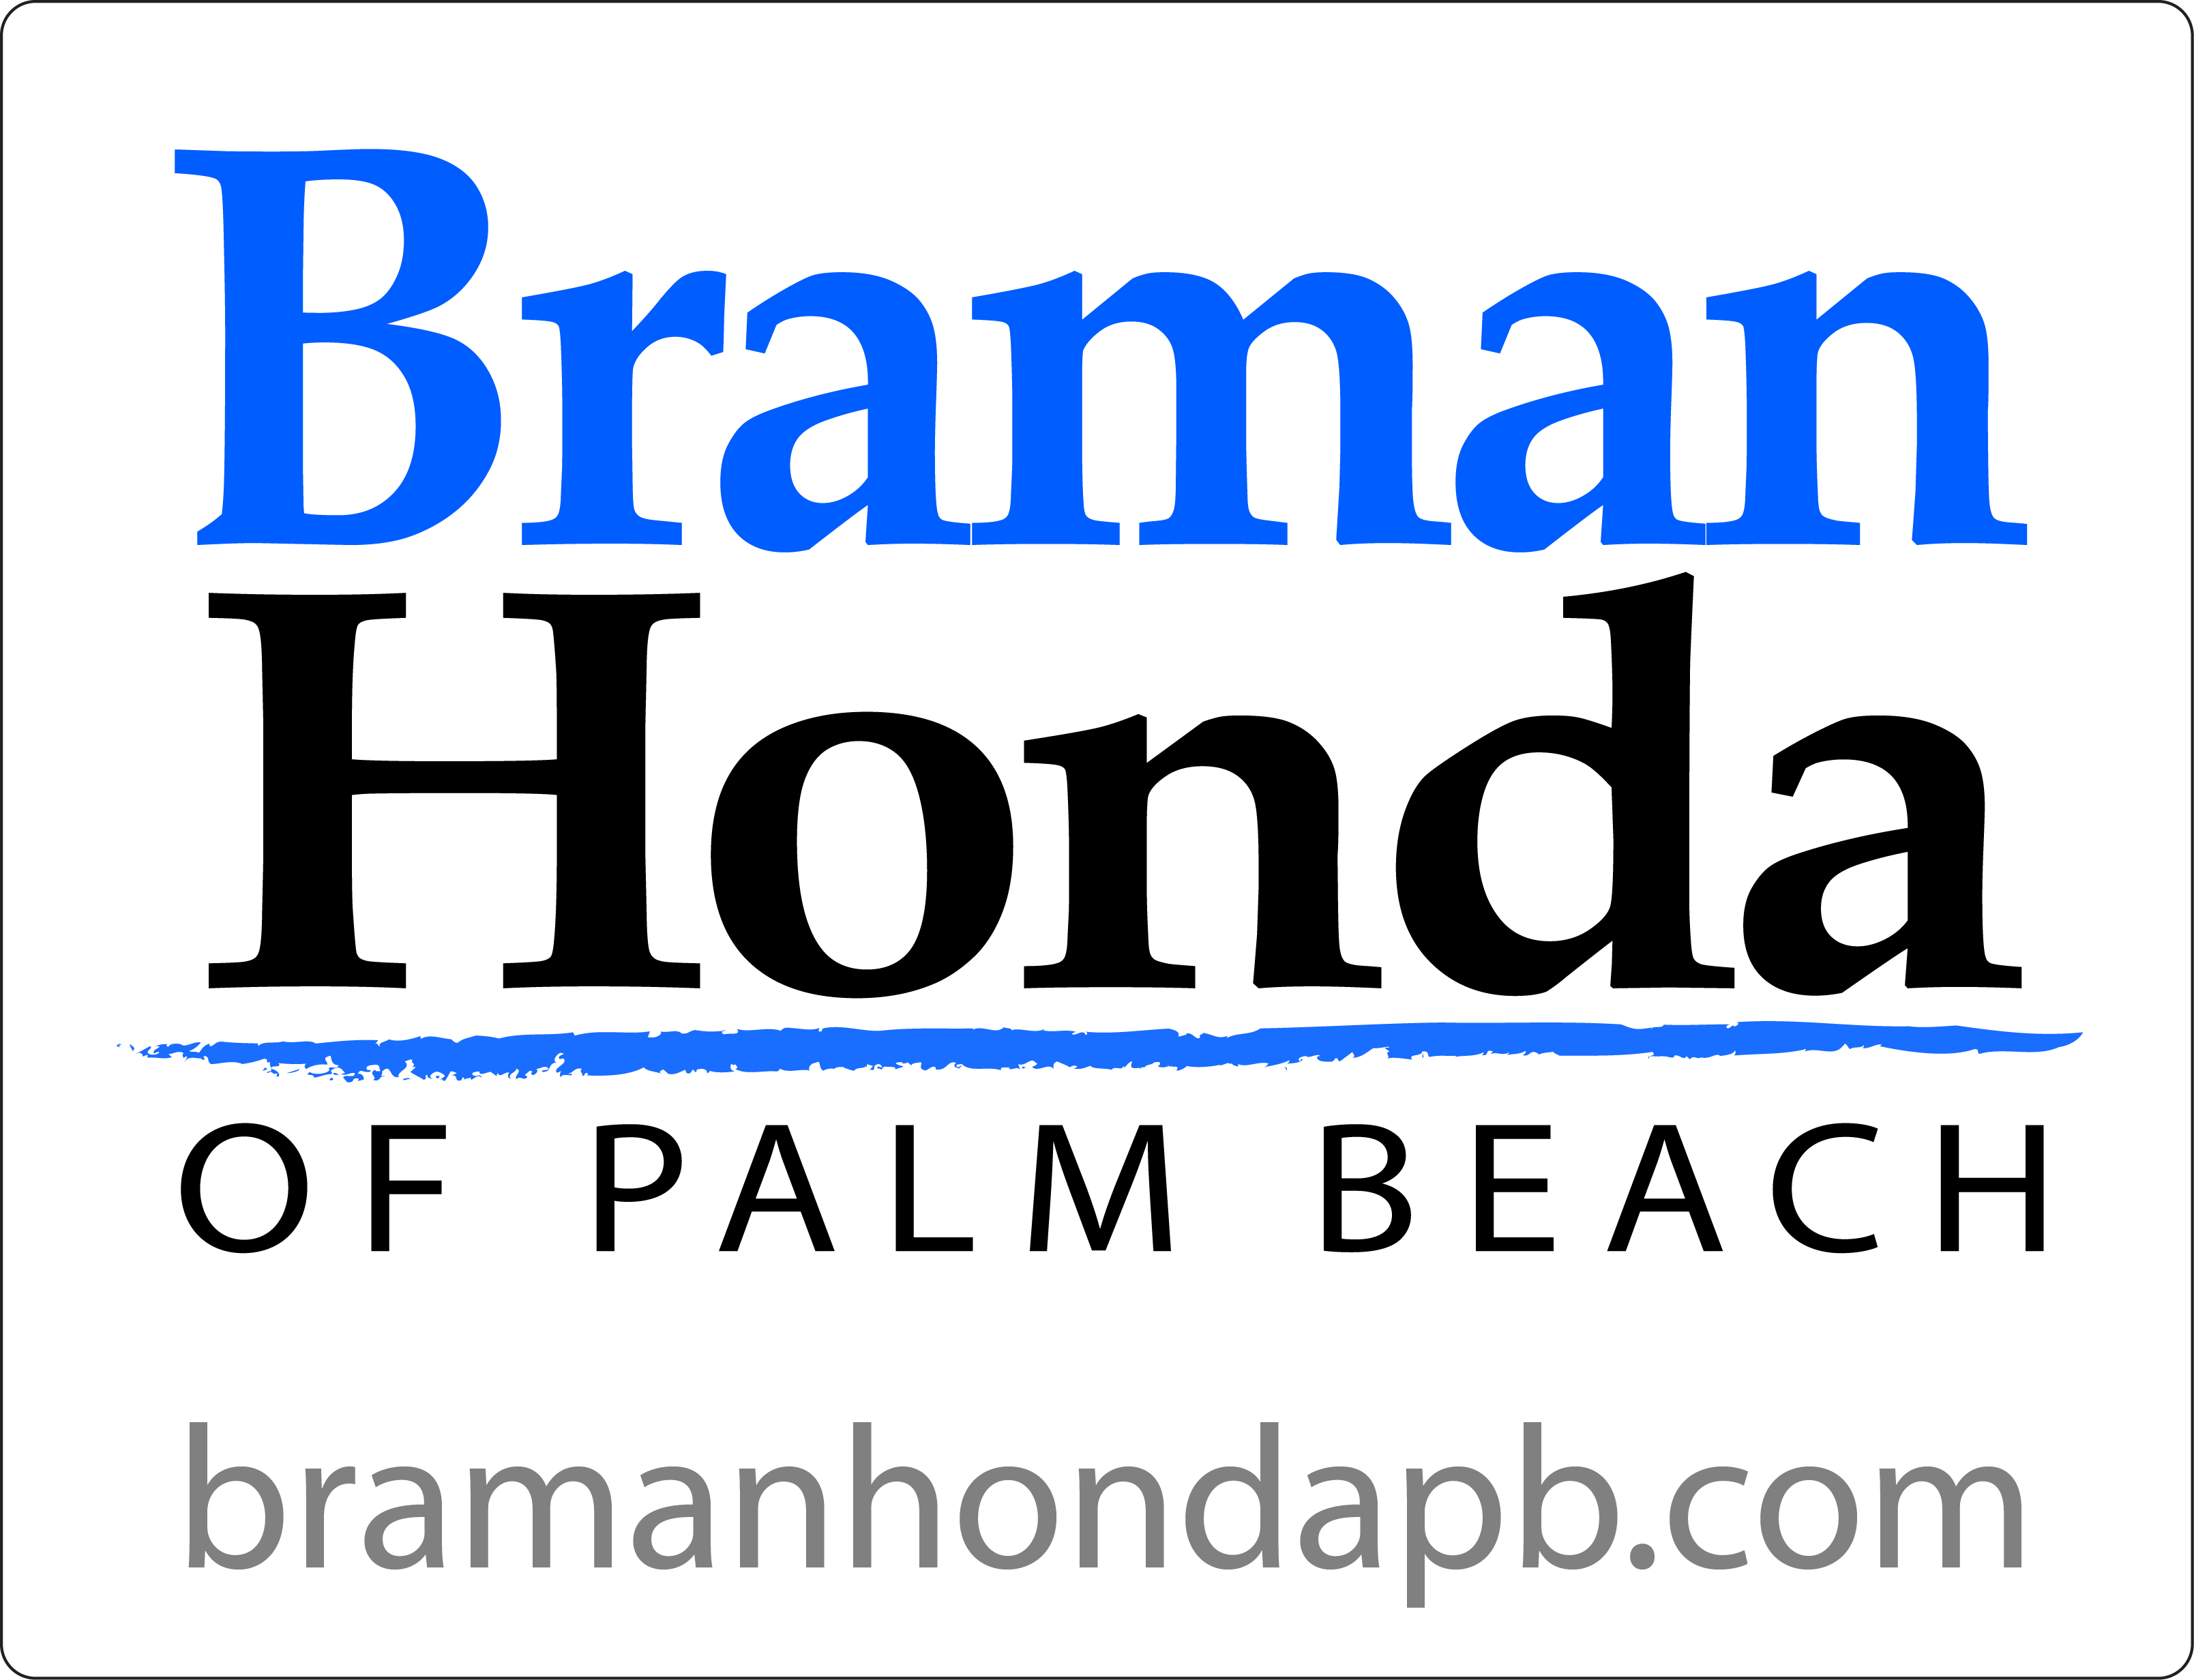 used car dealership greenacres fl braman honda palm beach